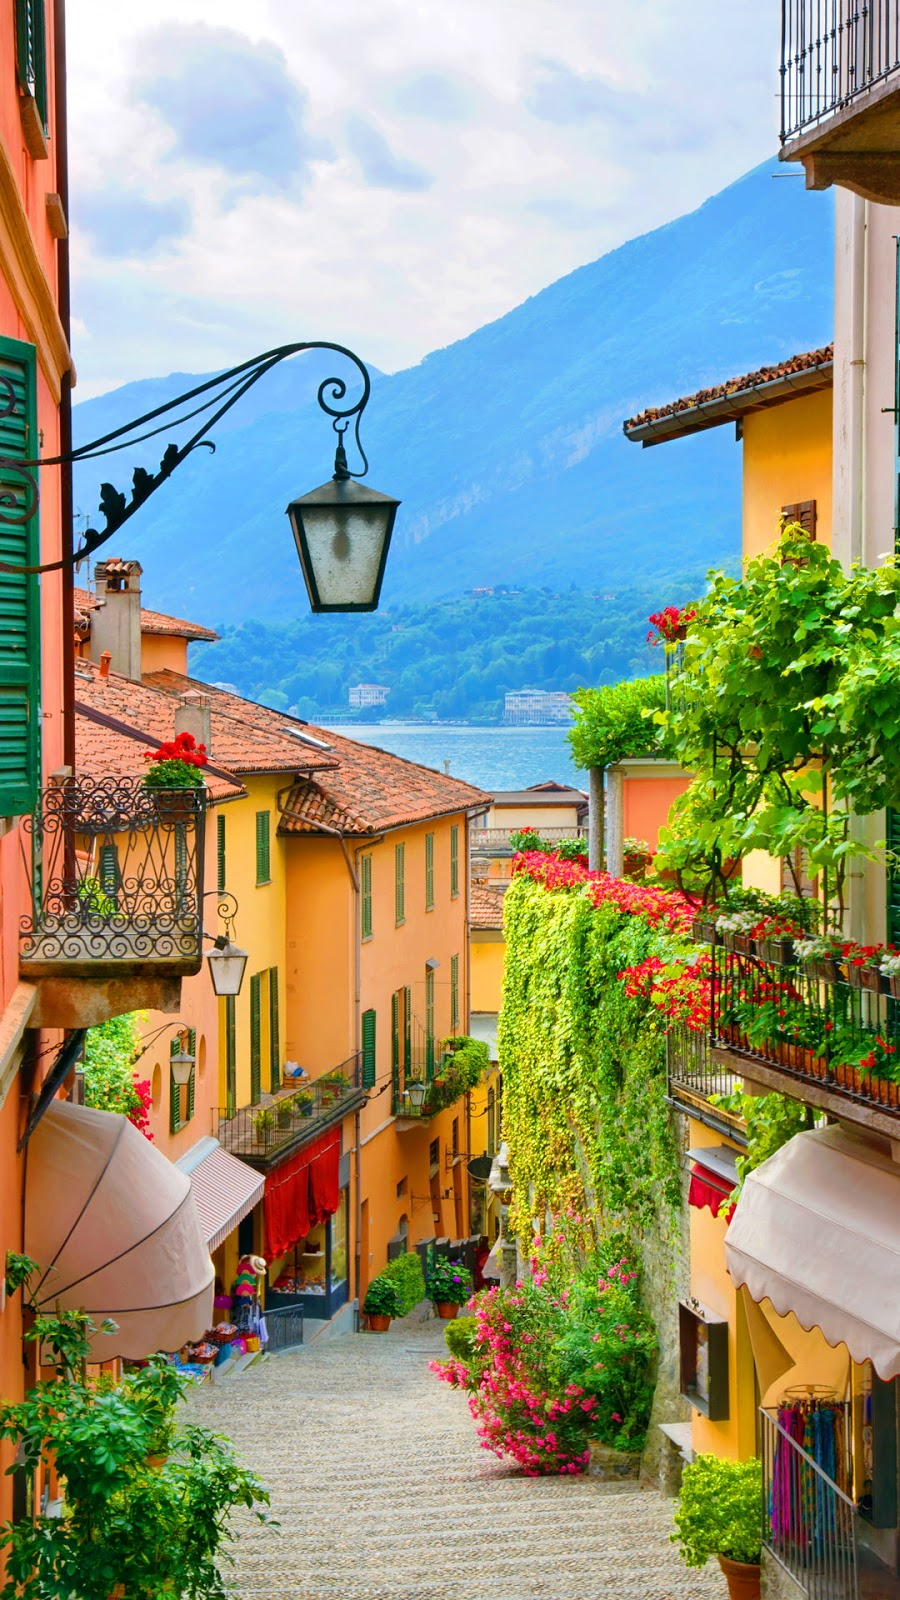 Italy landscape